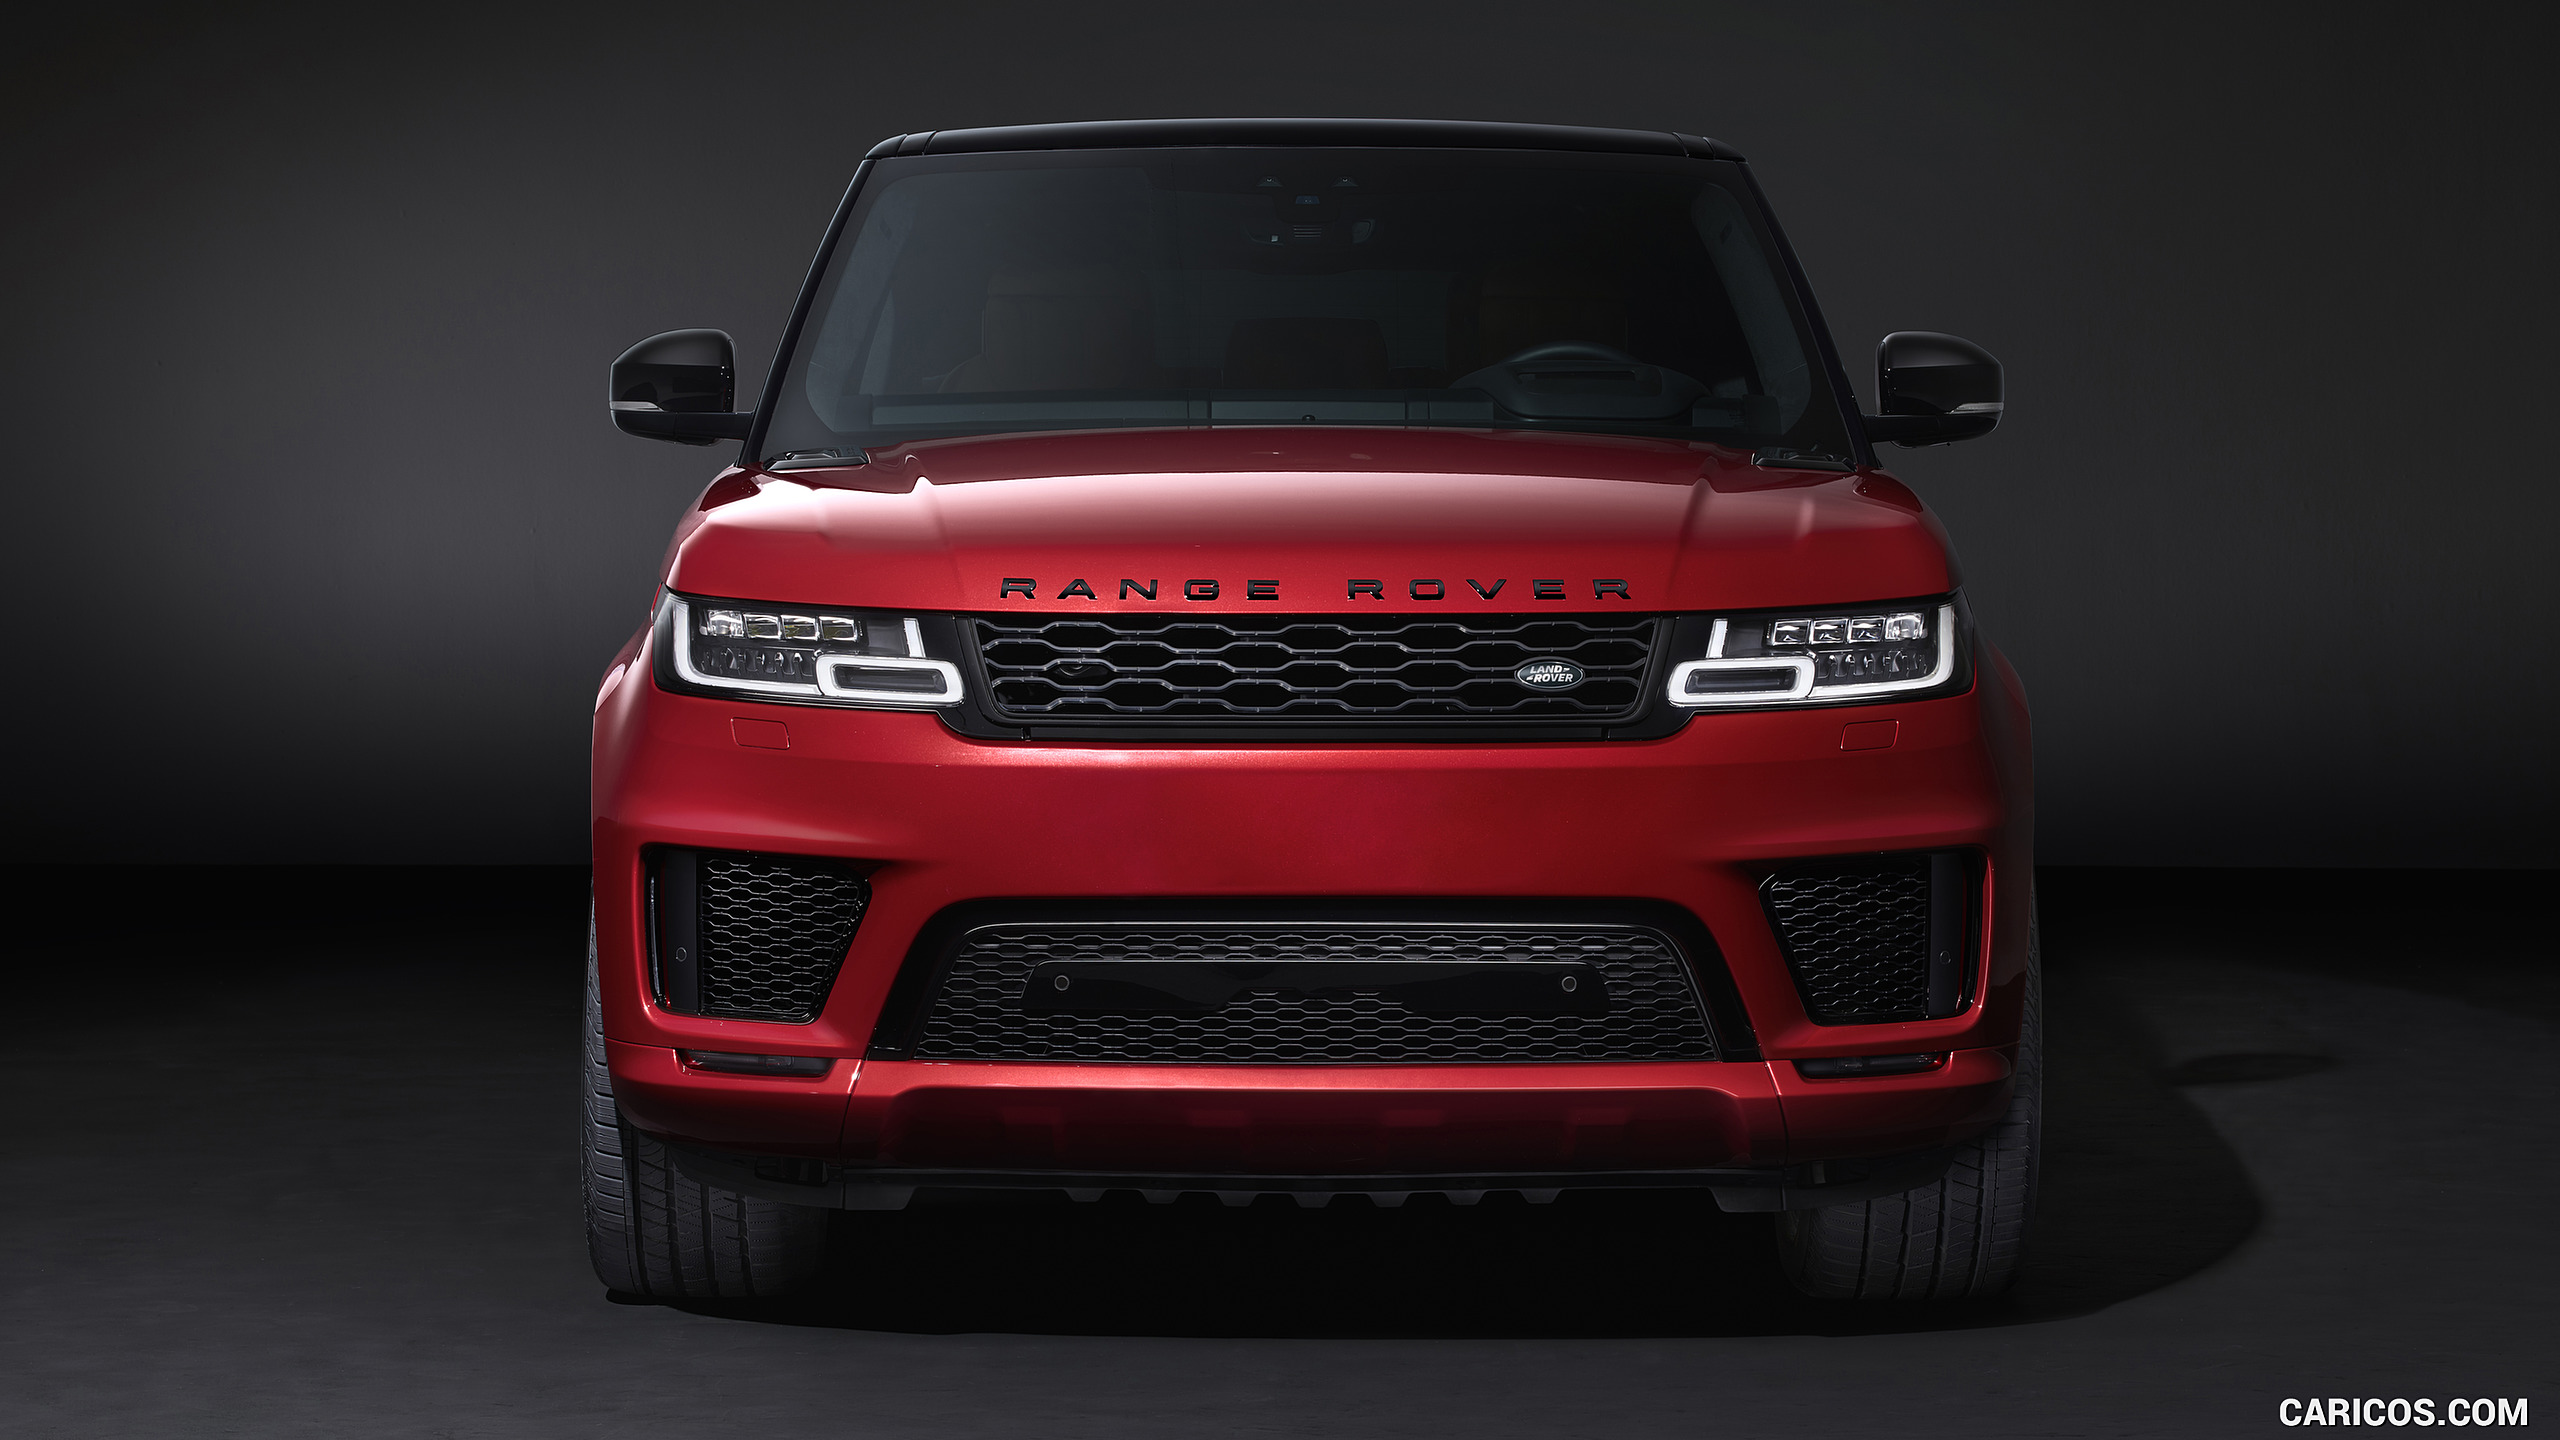 2560x1440 - Range Rover Wallpapers 3